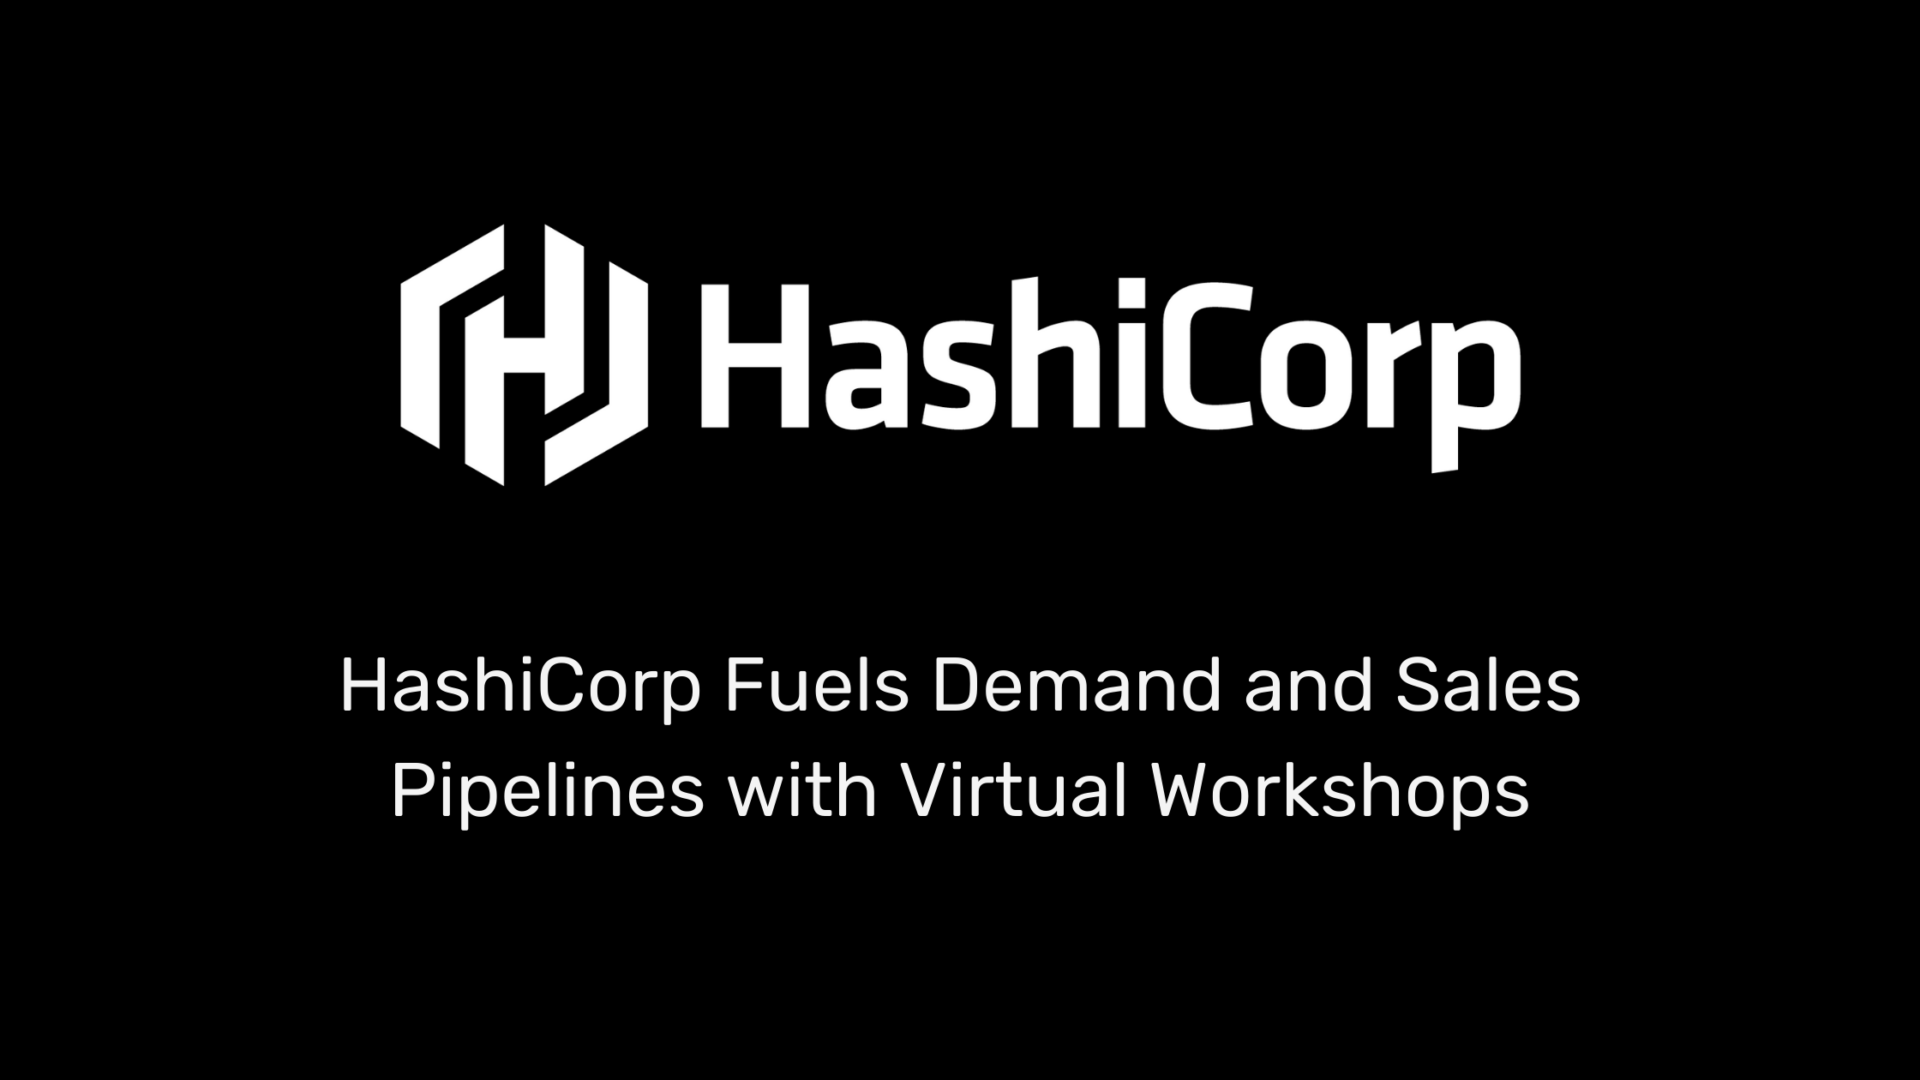 HashiCorp Fuels Demand and Sales Pipelines with Virtual Workshops